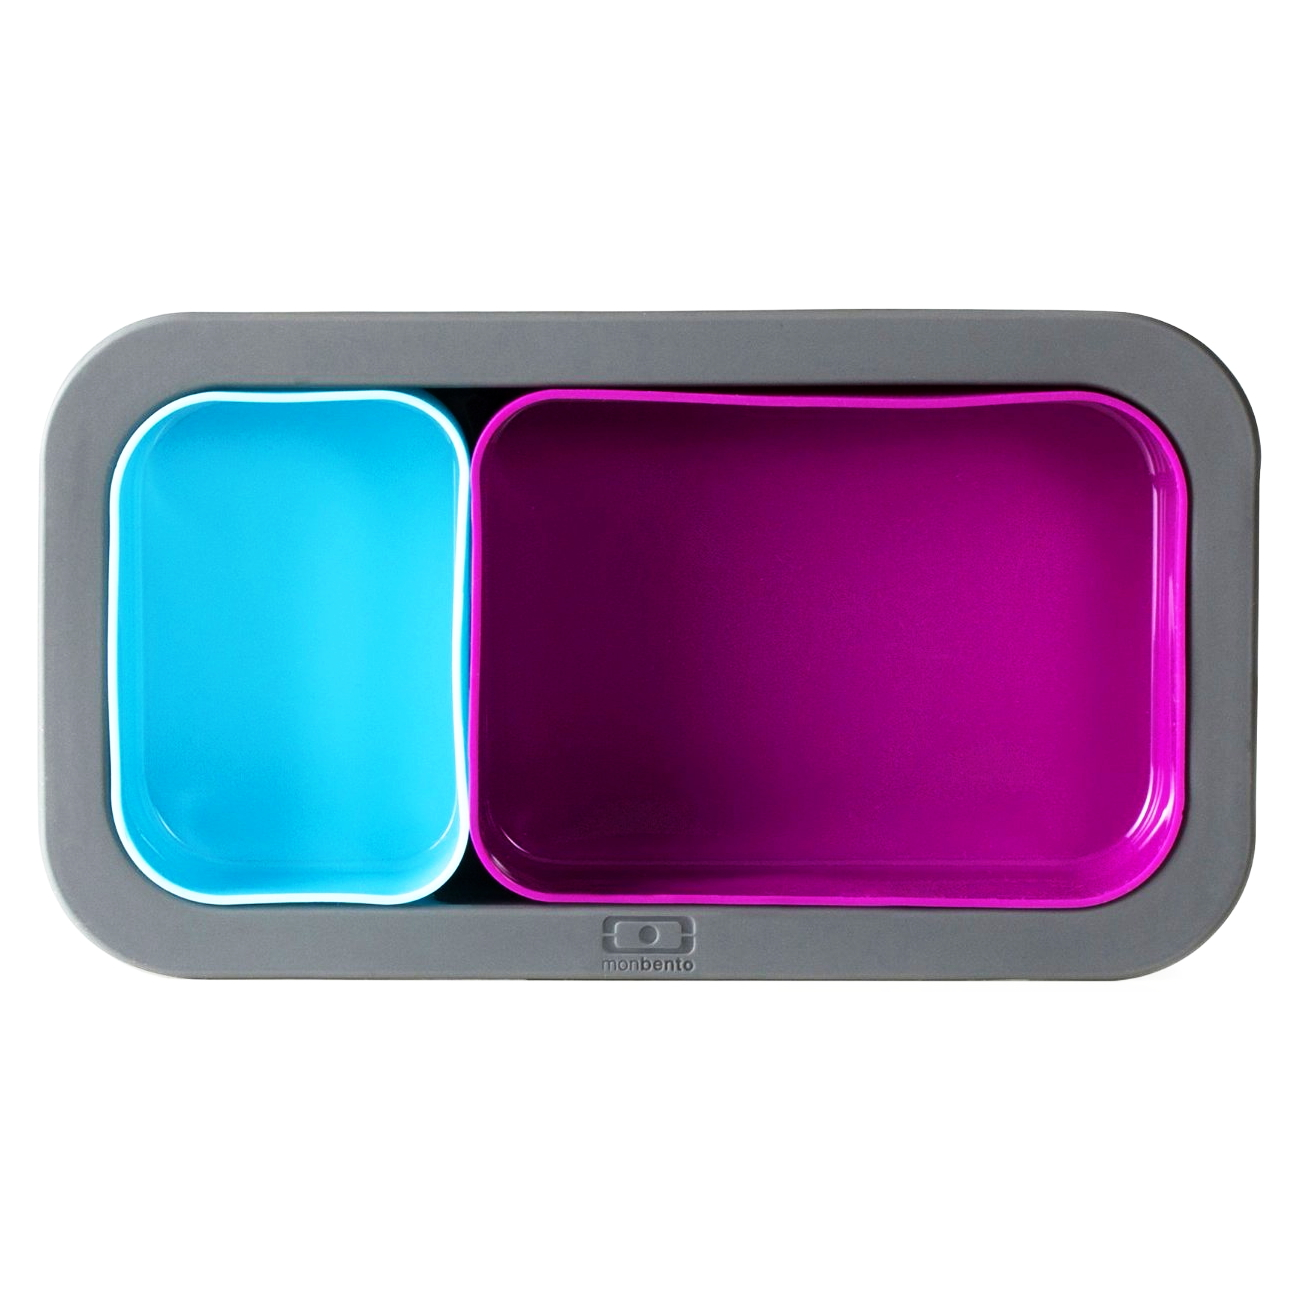 Monbento MB Silicase Grey Silicone Mold with Fuchsia and Light Blue Nesting Food Cups